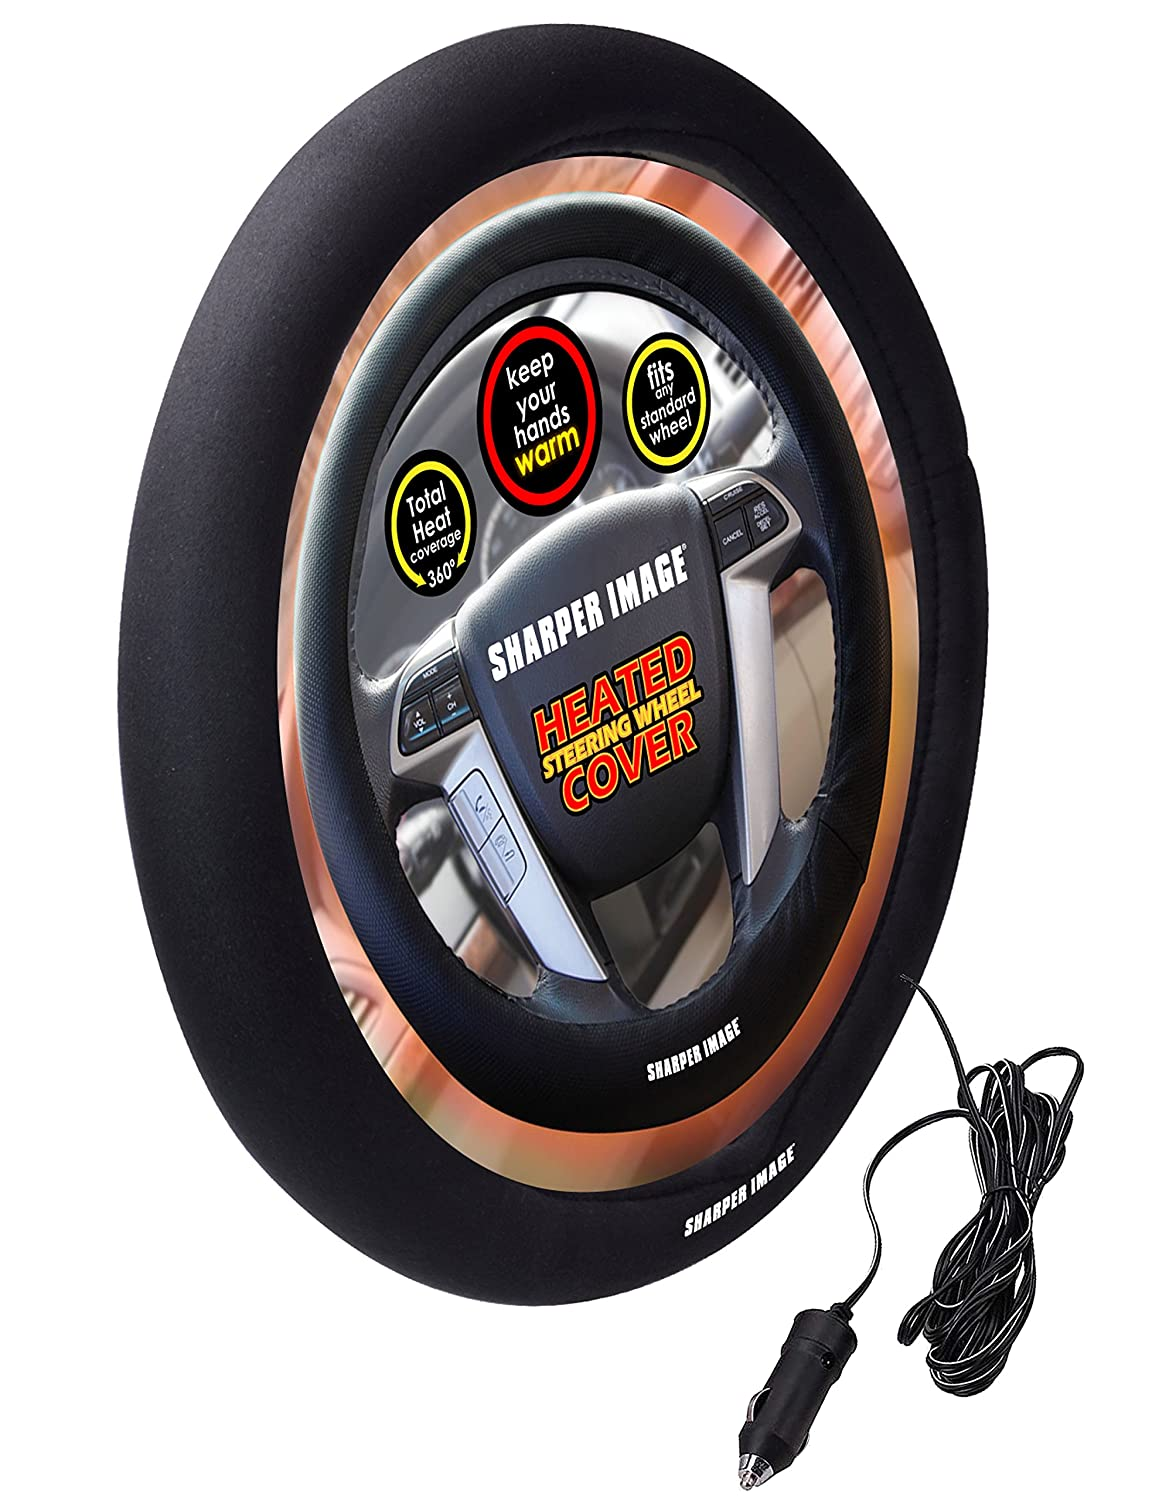 Sharper Image SI-AA4 Heated Steering Wheel Cover Smart Planet